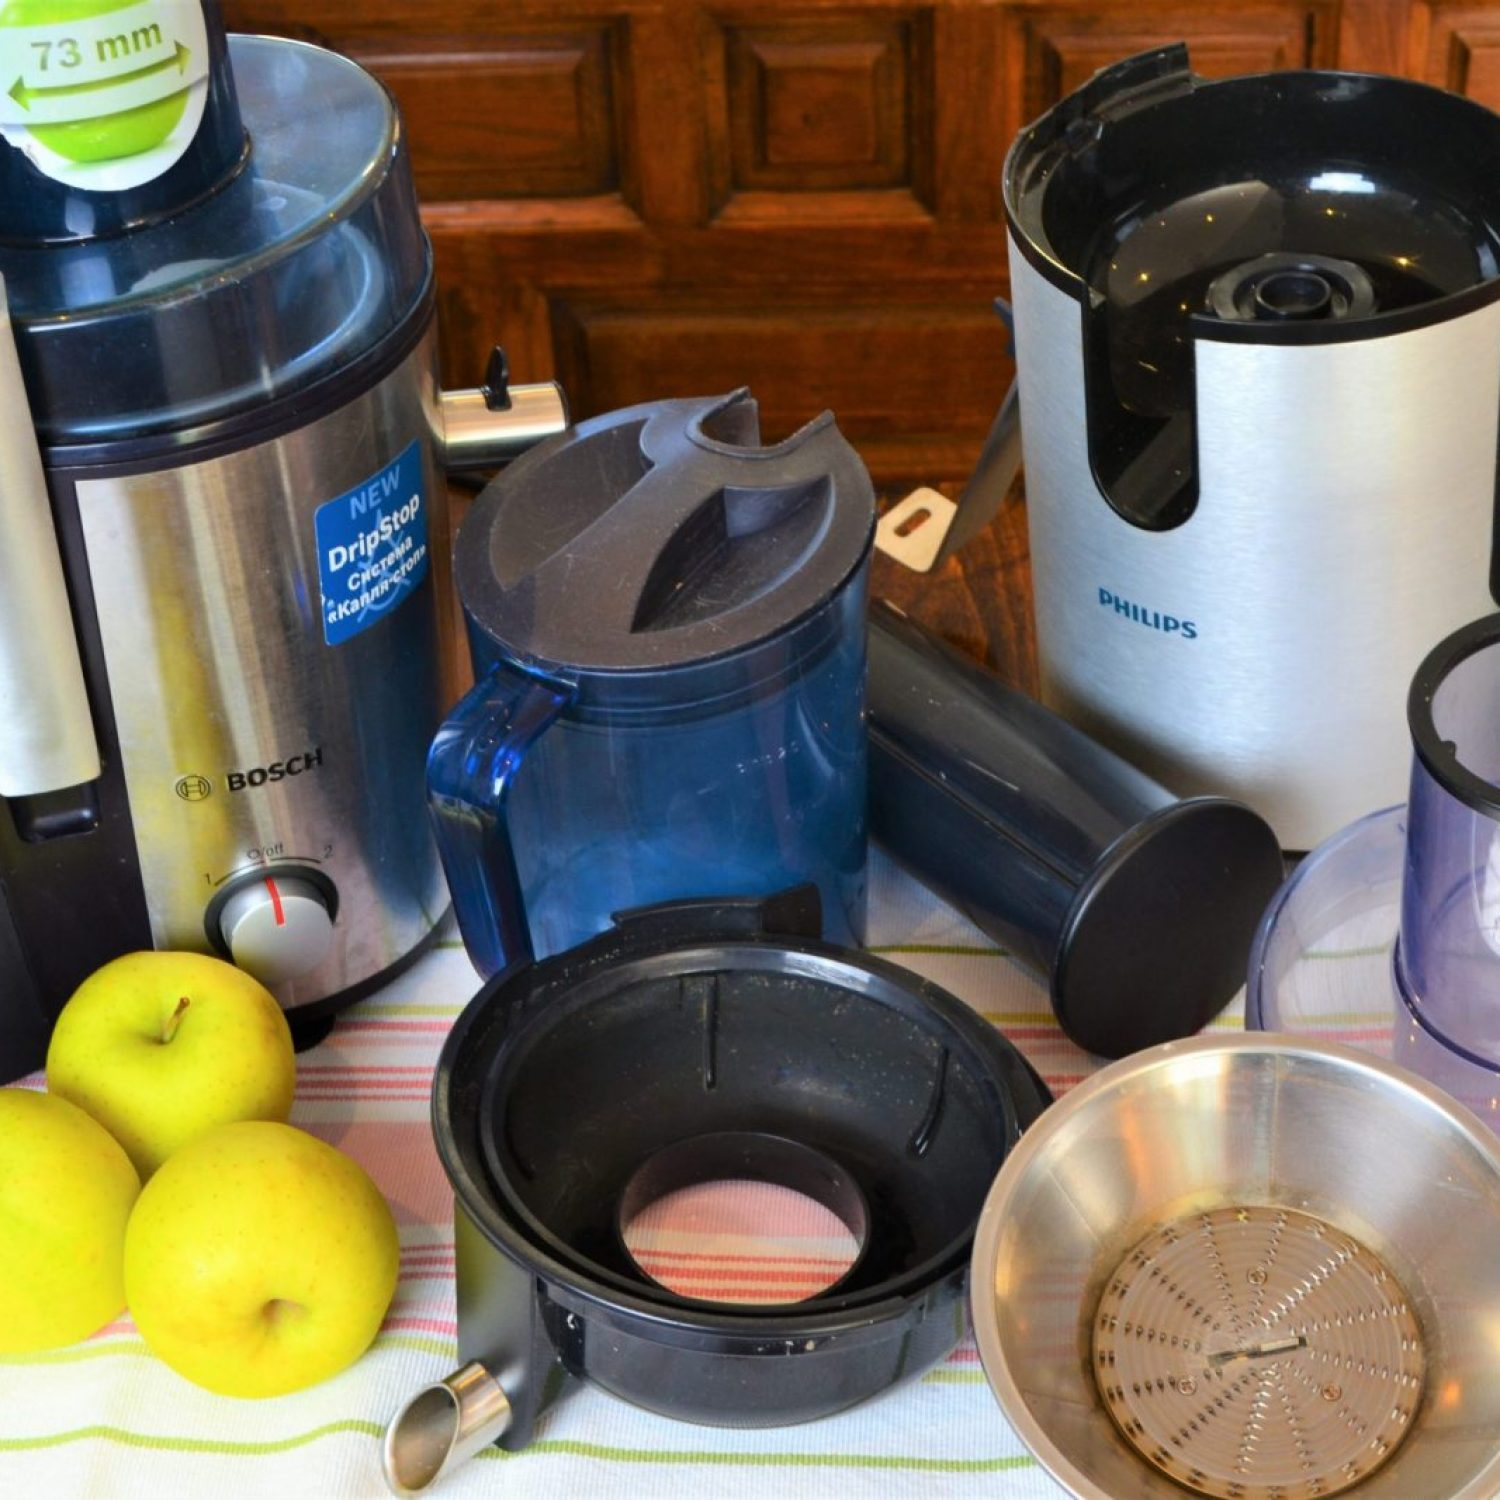 How to choose the best juicer for you